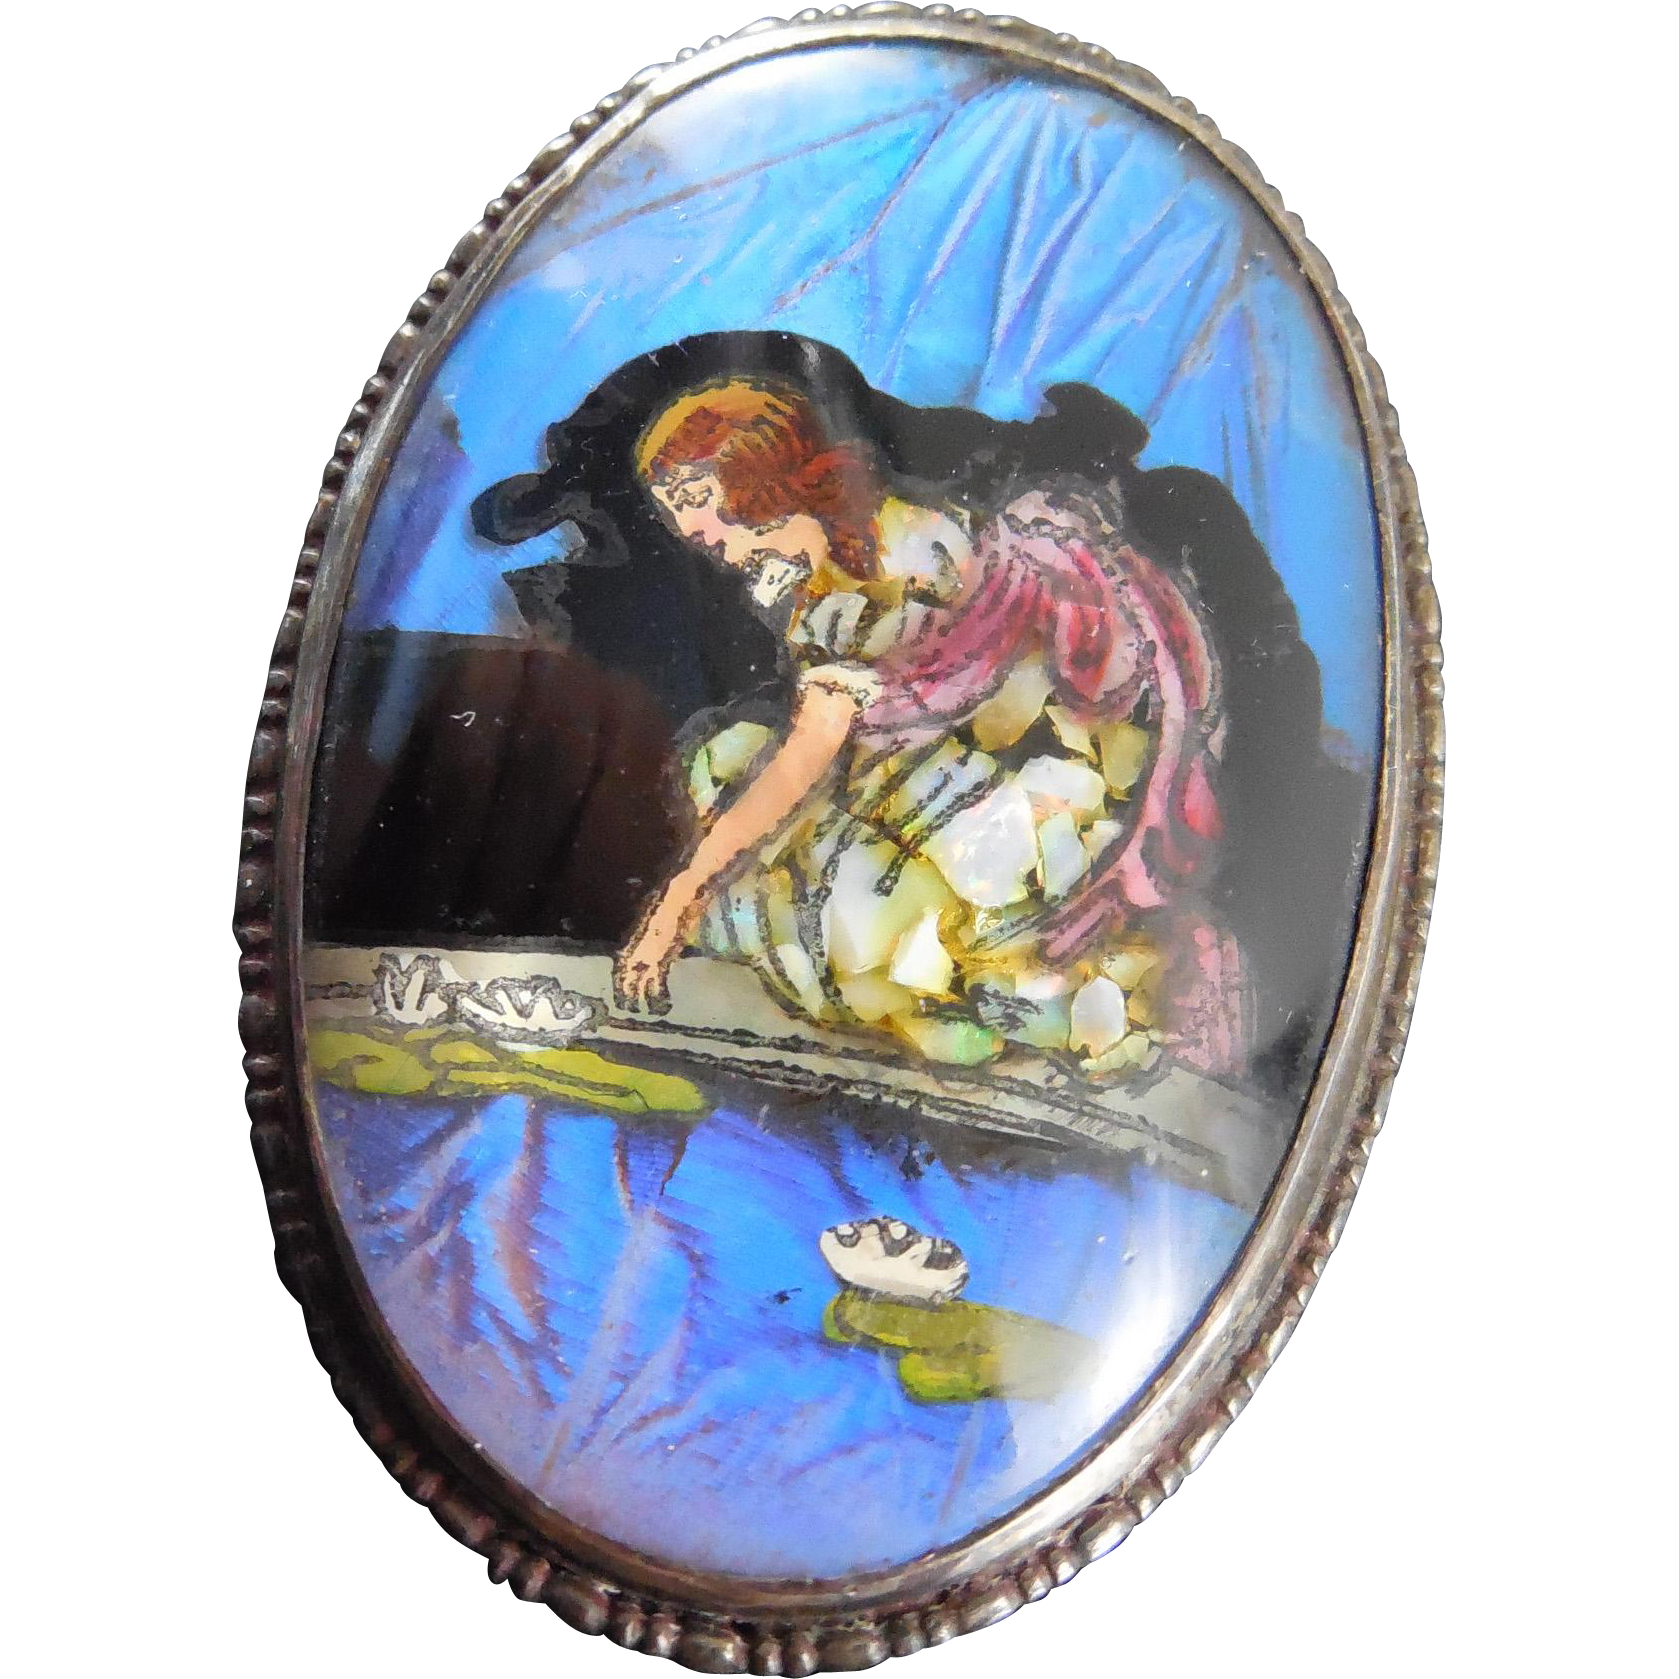 1924 England Sterling Butterfly Wing Brooch Girl Pond Lilypads - Fairy Tale Scene